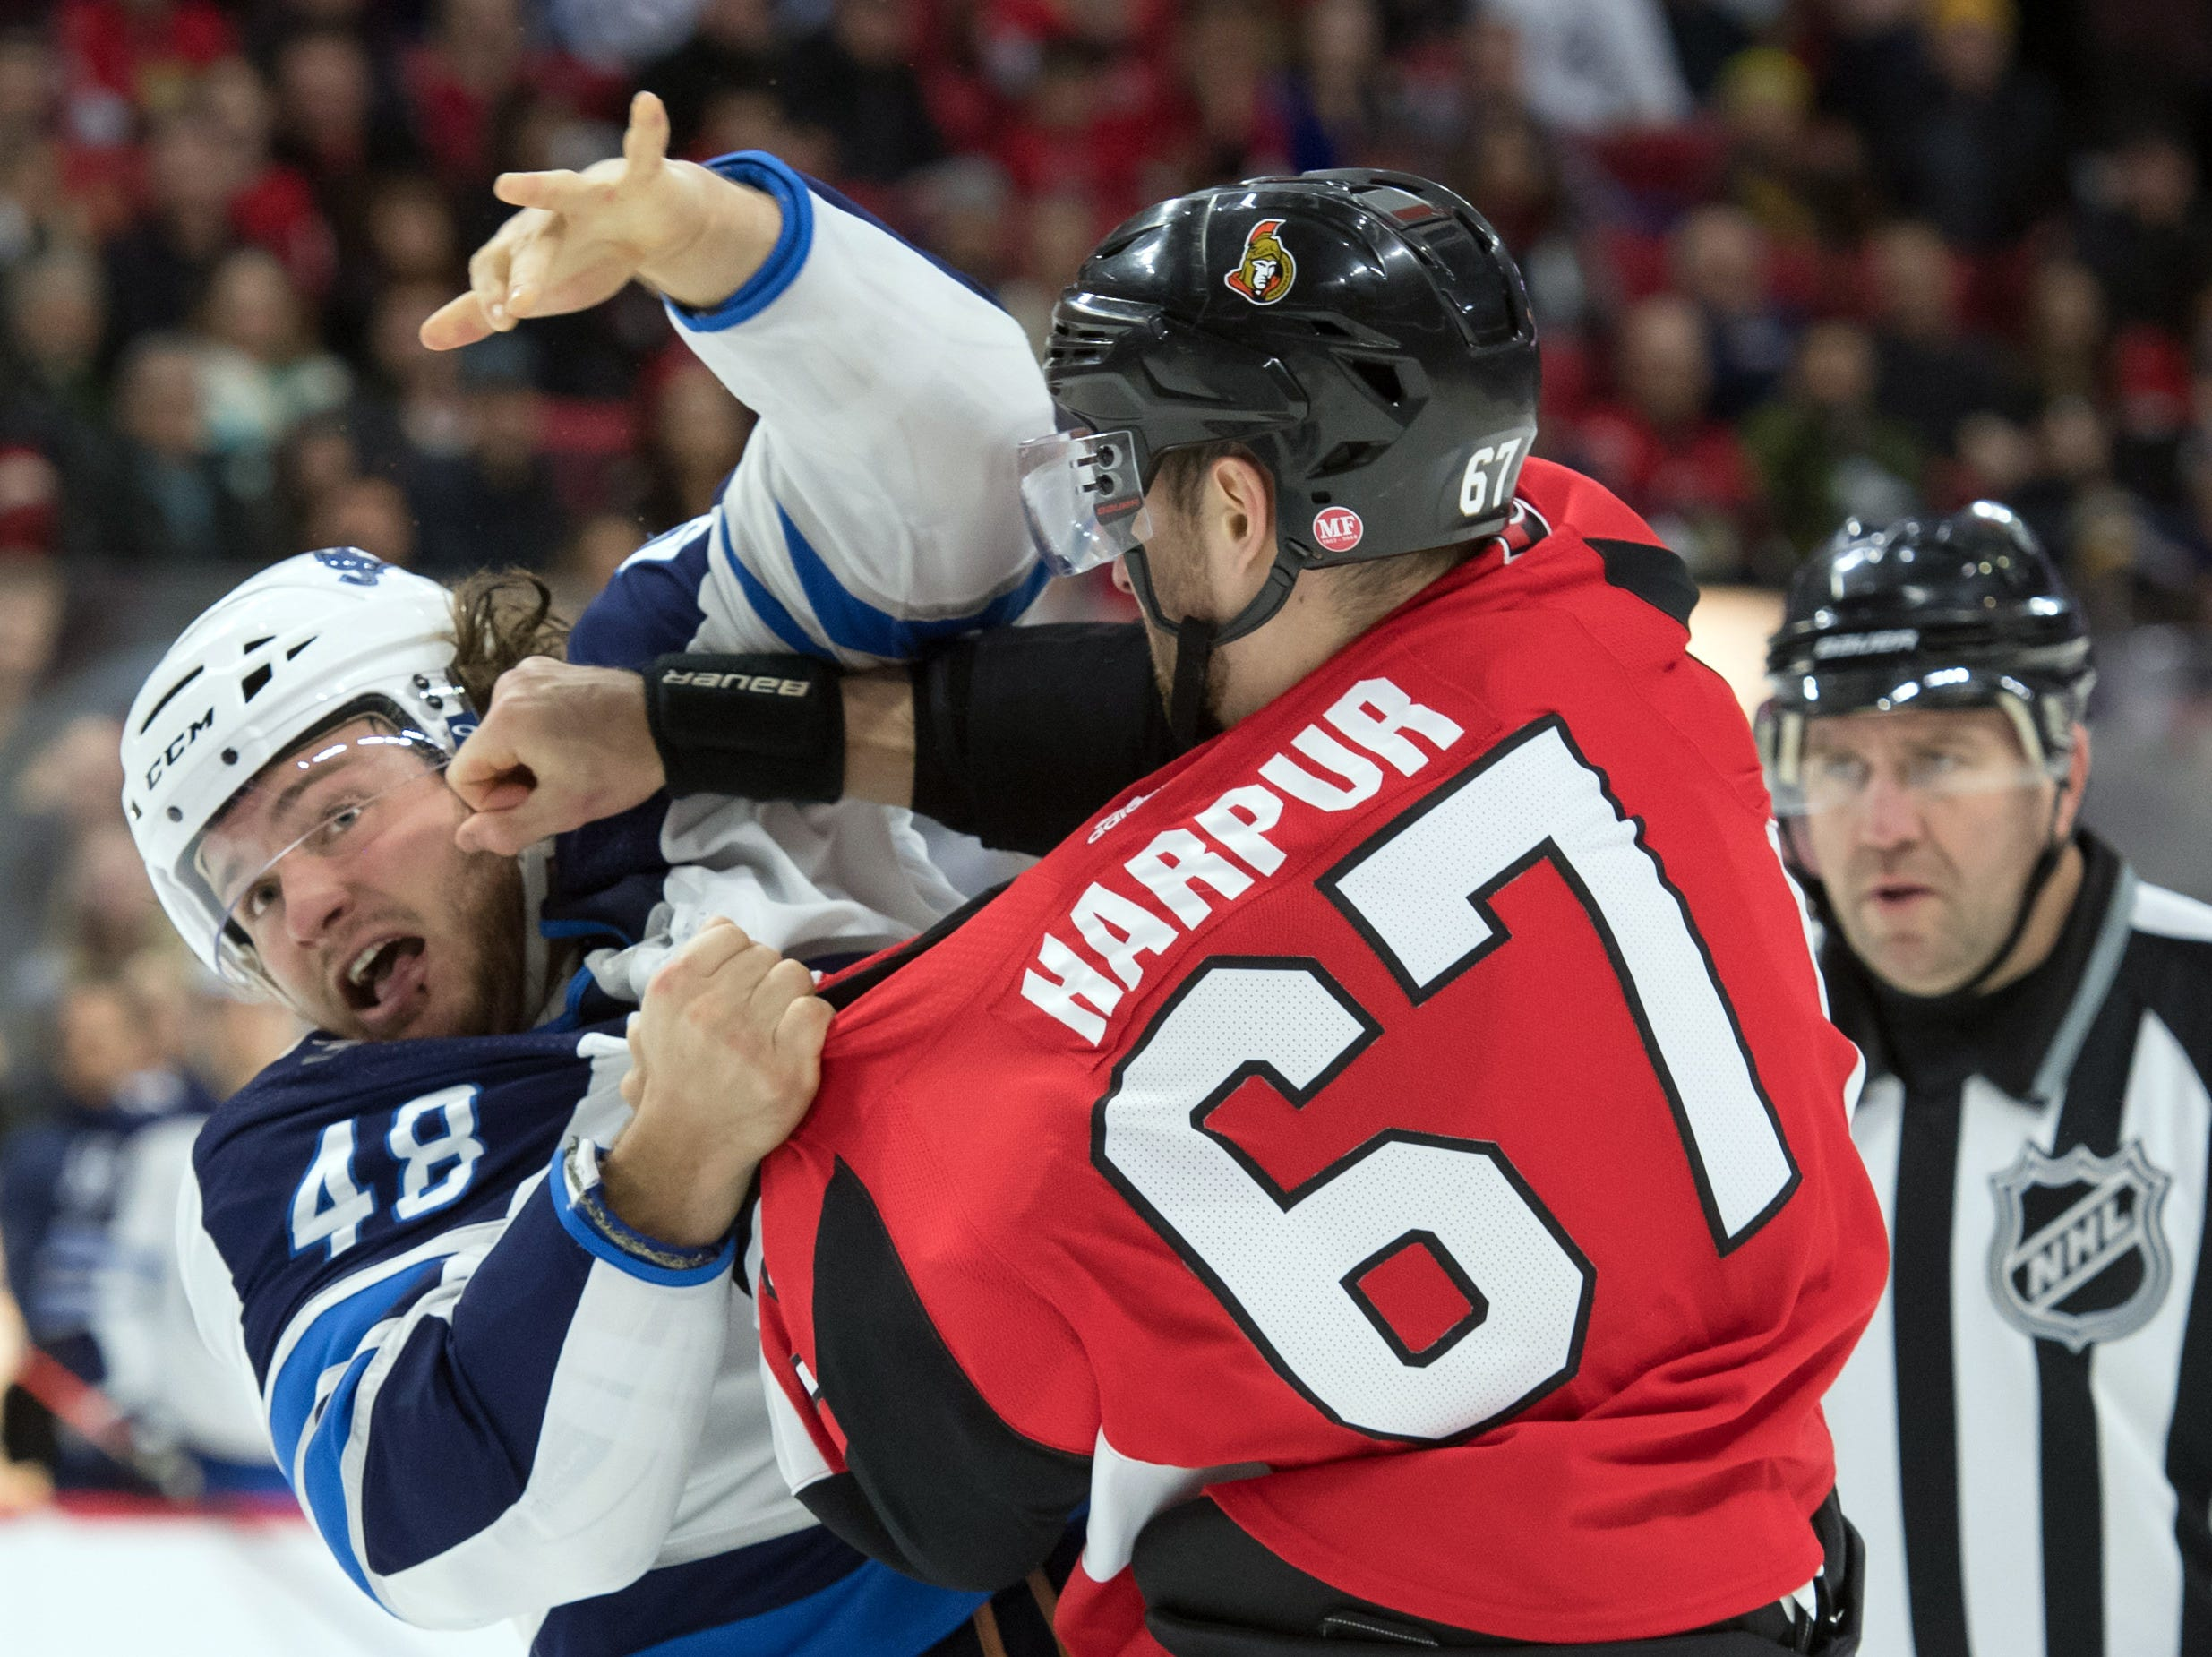 Feb. 9: Winnipeg Jets' Brendan Lemieux vs. Ottawa Senators' Ben Harpur